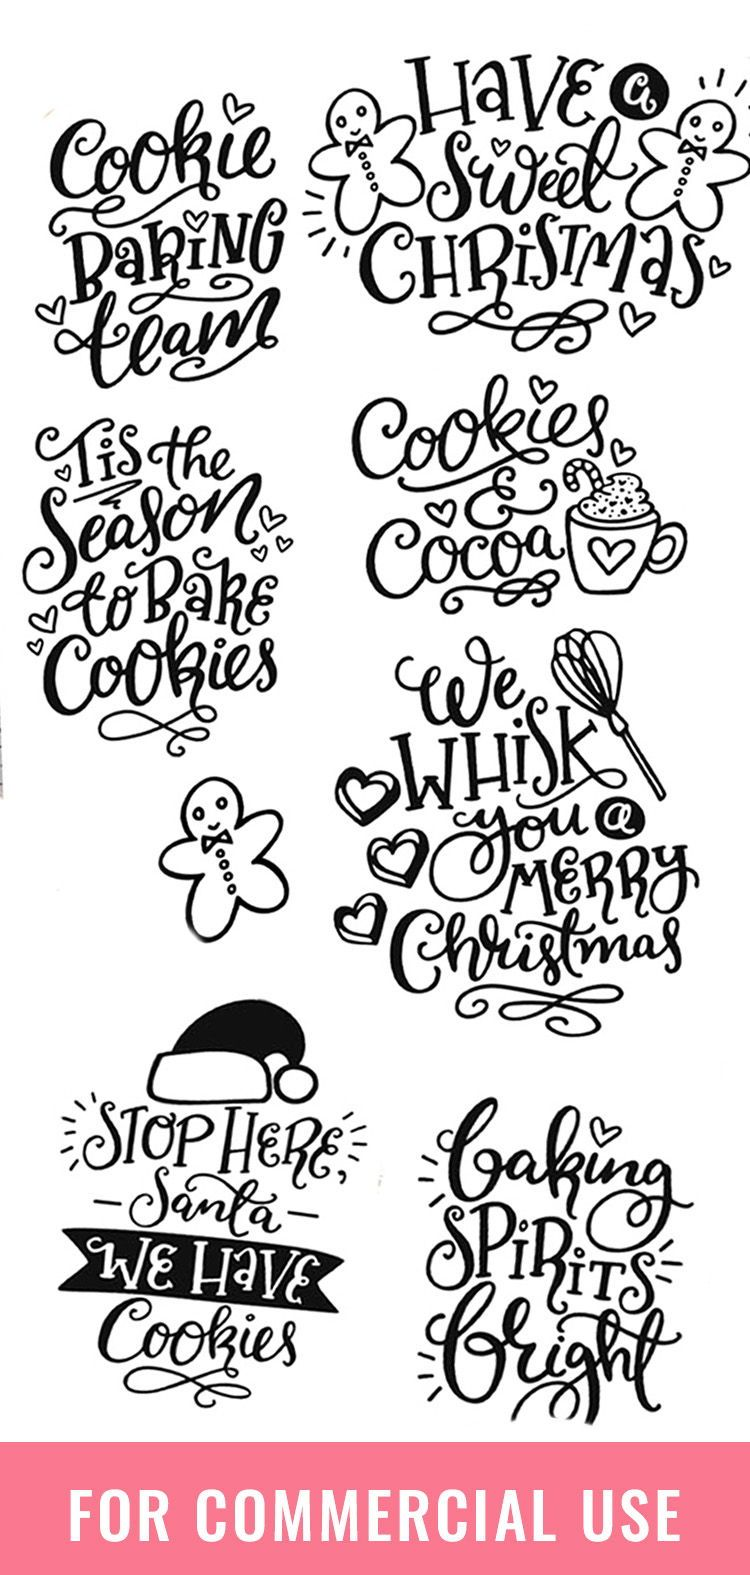 Christmas Baking SVG Bundle! 7 Cute Holiday Quote Designs (7